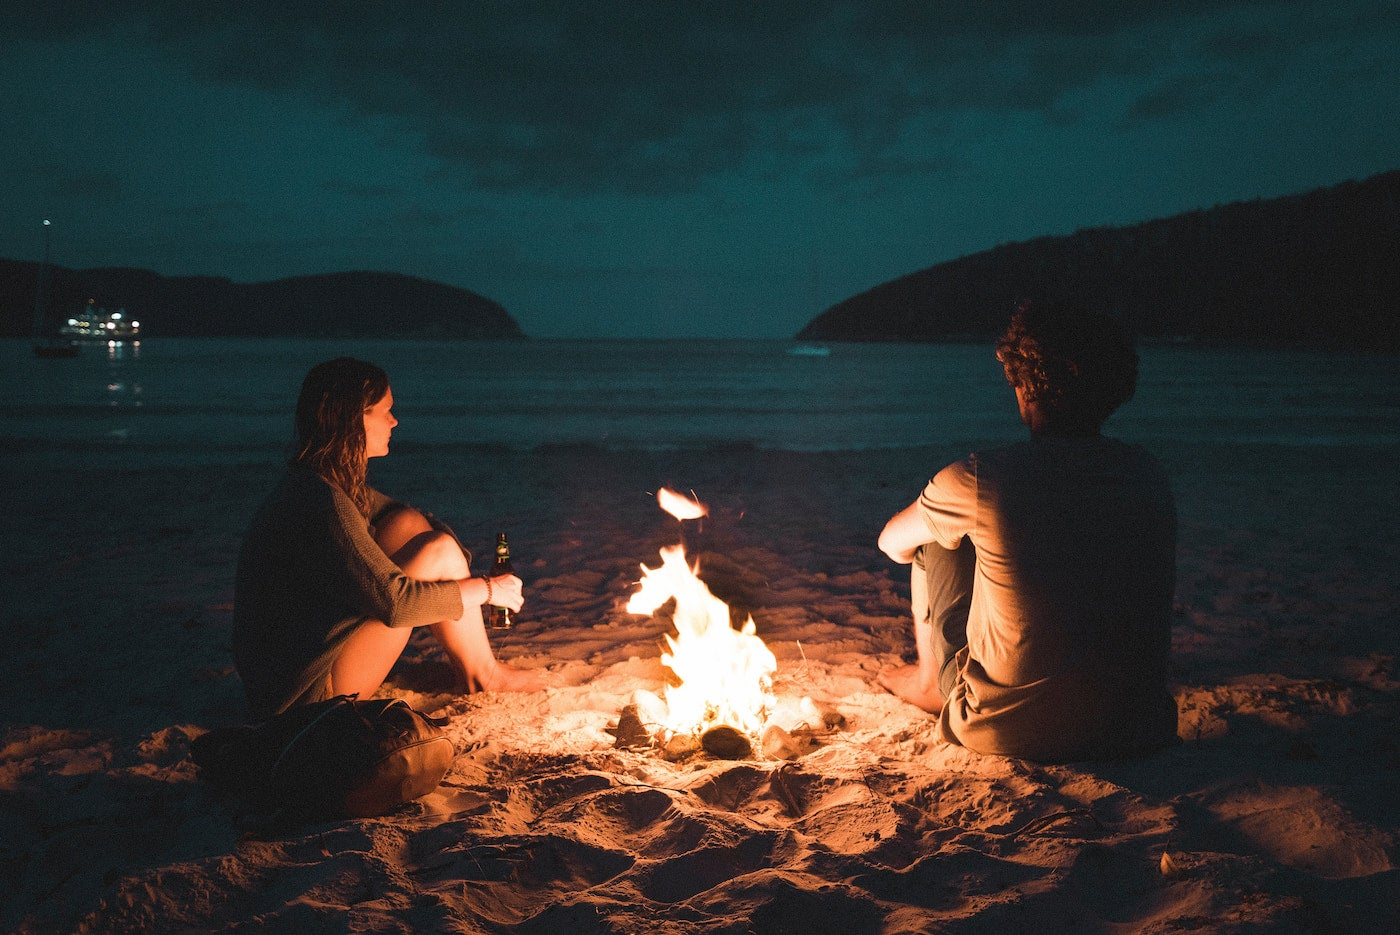 Two people talking and sitting around the campfire.